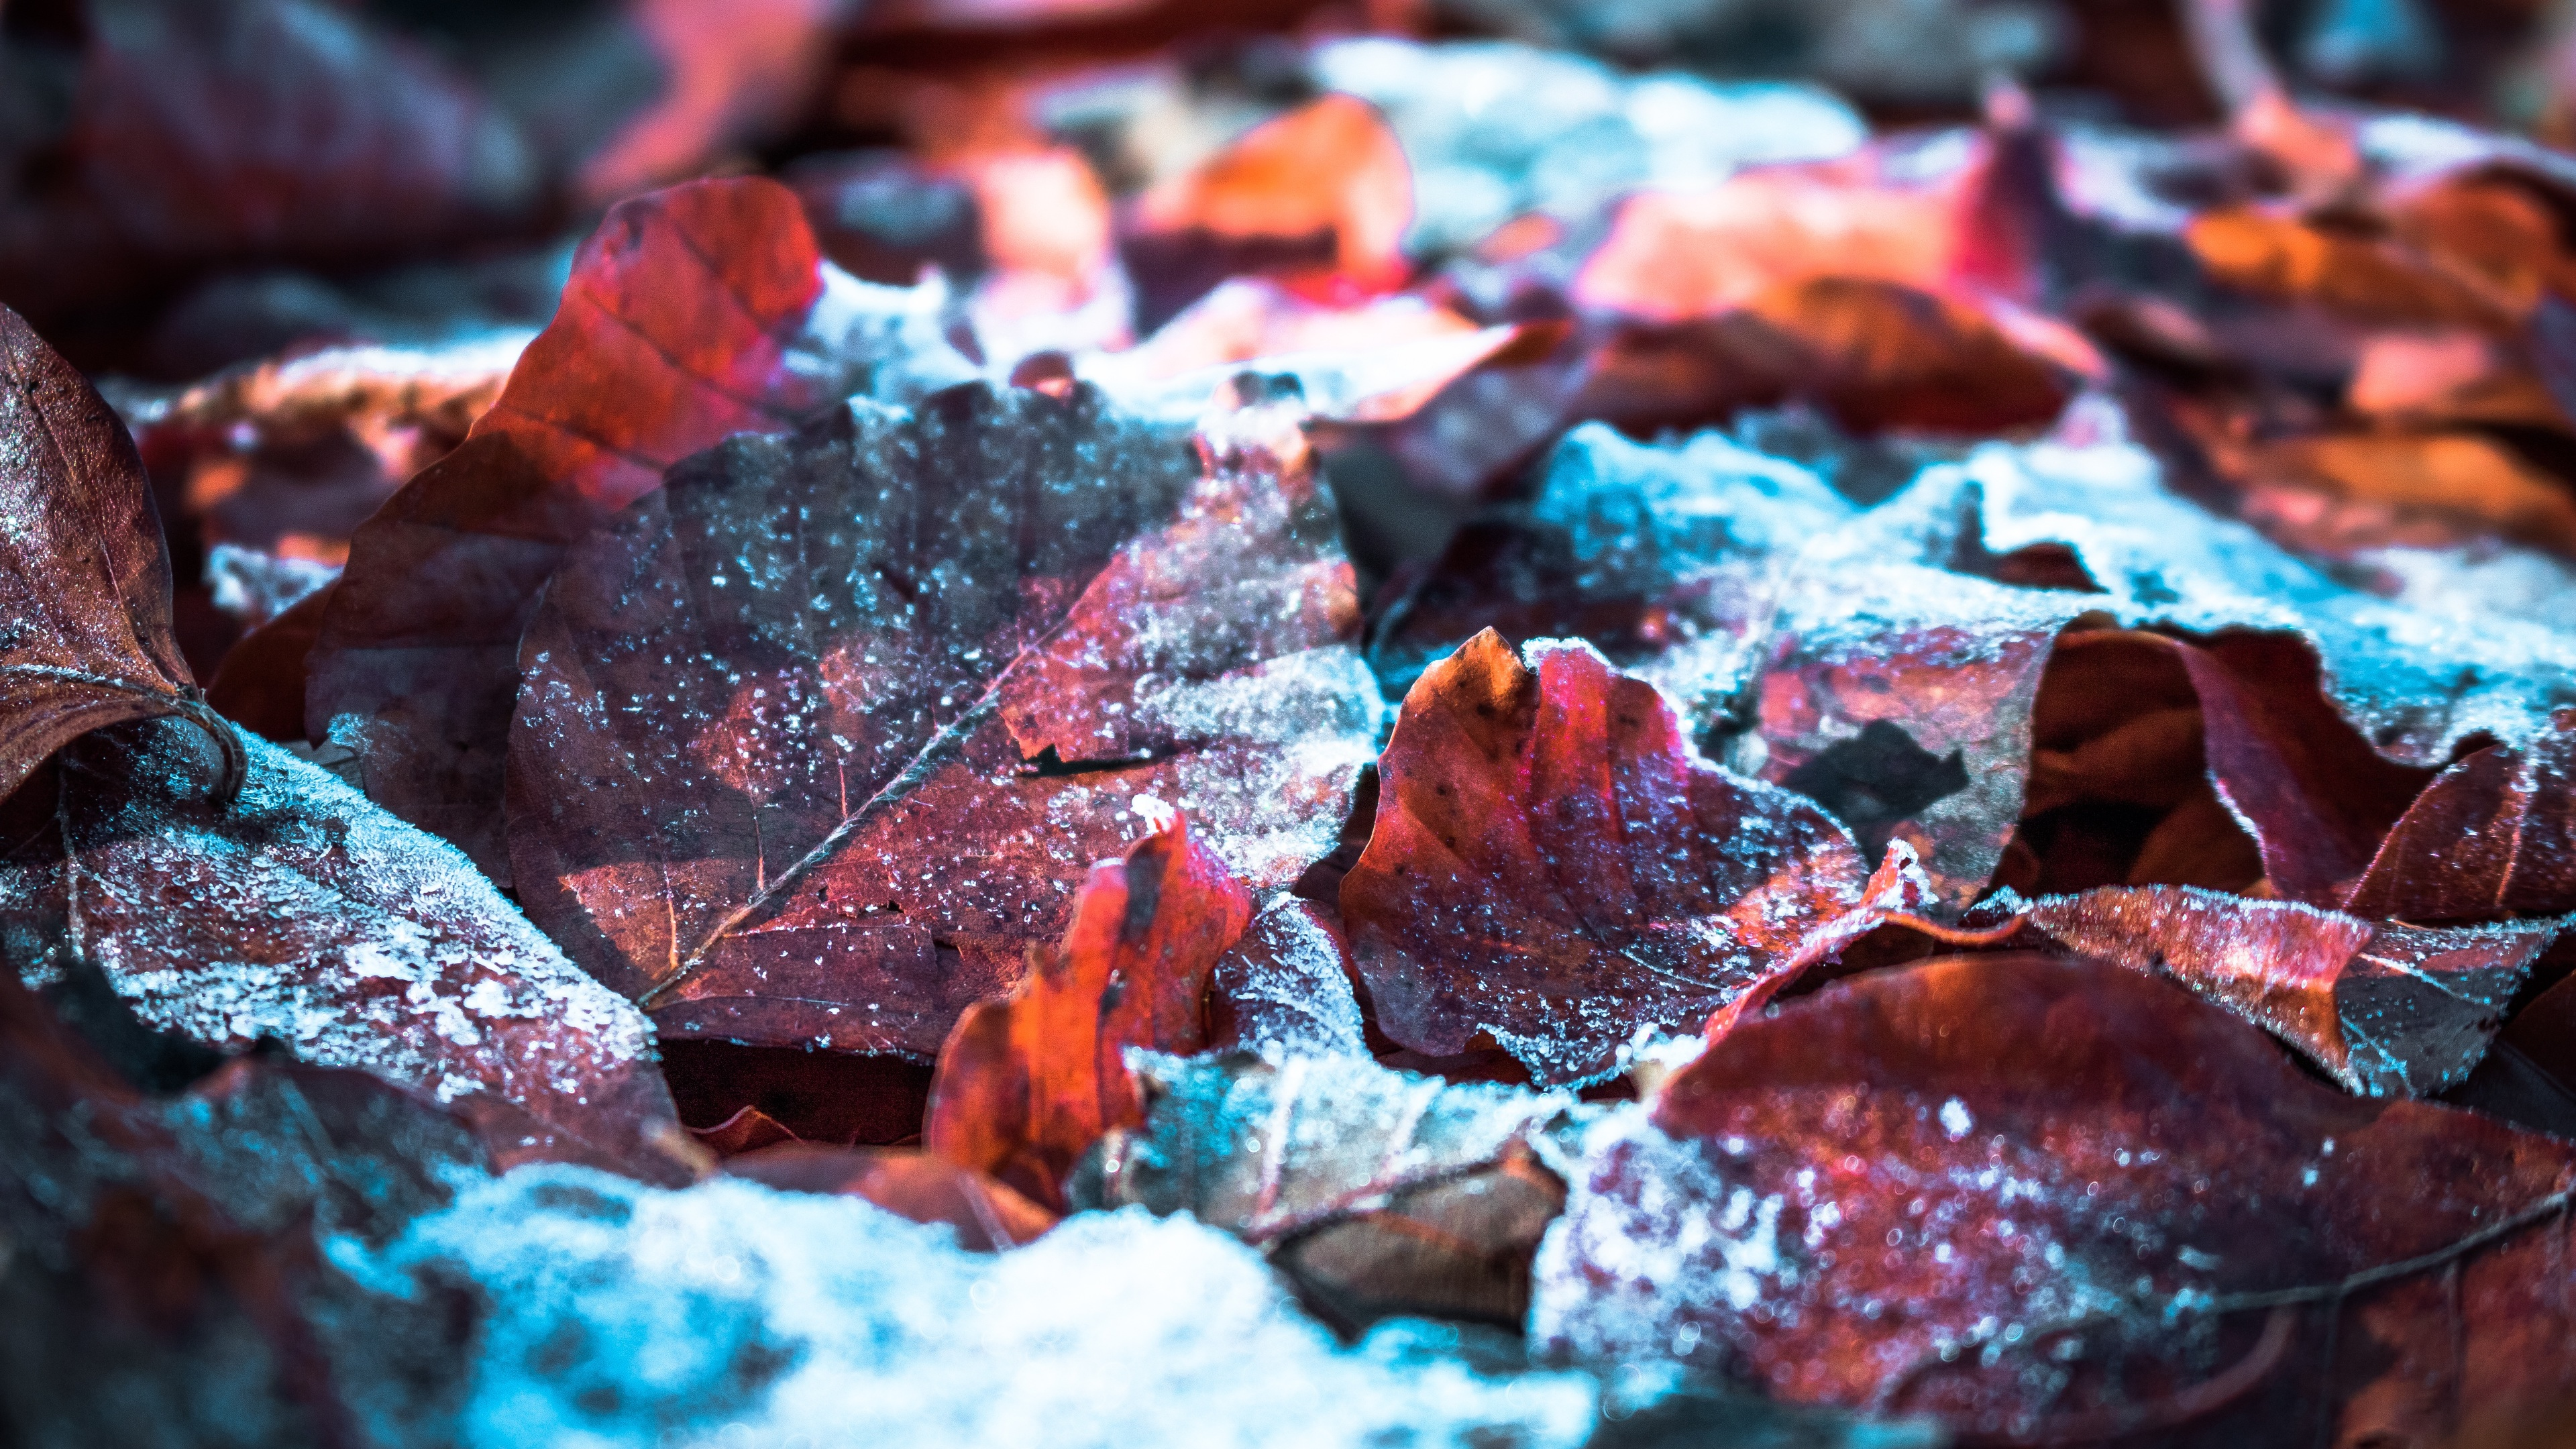 fallen snow on leaf 4k 1551643953 - Fallen Snow On Leaf 4k - snow wallpapers, photography wallpapers, nature wallpapers, leaf wallpapers, hd-wallpapers, 4k-wallpapers